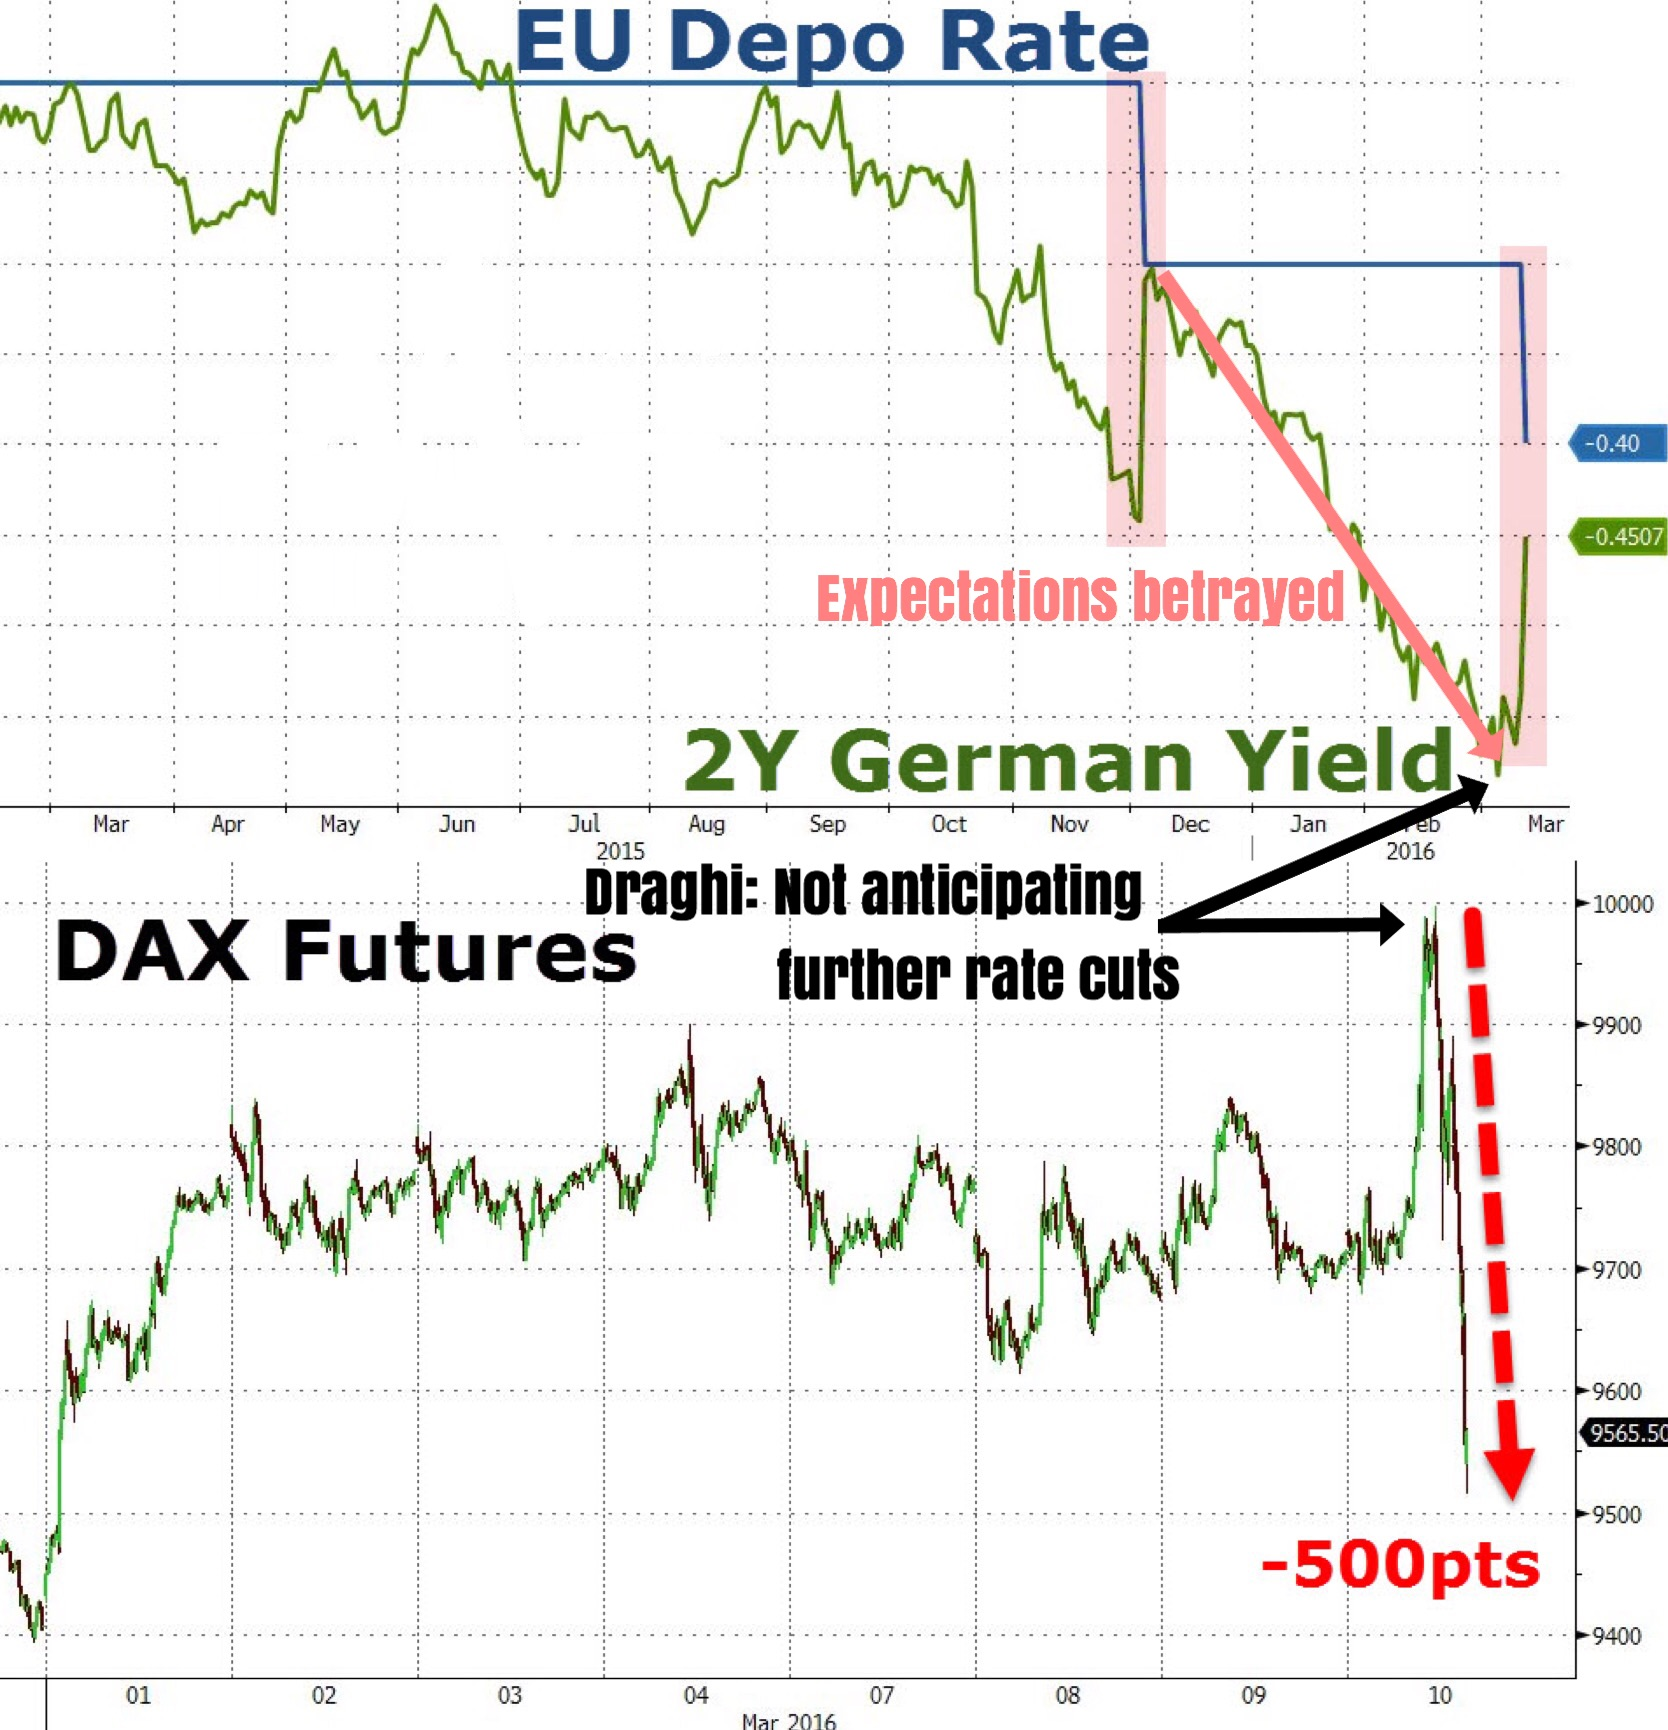 """""""Euro shorts (and correlation trades) have capitulated in earnest after Draghi pulled way back from promising further rate cuts in the coming months. Not only is the euro 140 pips higher that pre-ECB levels, European risk assets (and globally for that matter) are selling off hard.    And of course, European rates are rallying in convergence to where the ECB's o/n deposit rate currently sits. This isn't the first time Draghi has noosed euro shorts.""""   Business Of Finance on Facebook, 10 March 2016"""